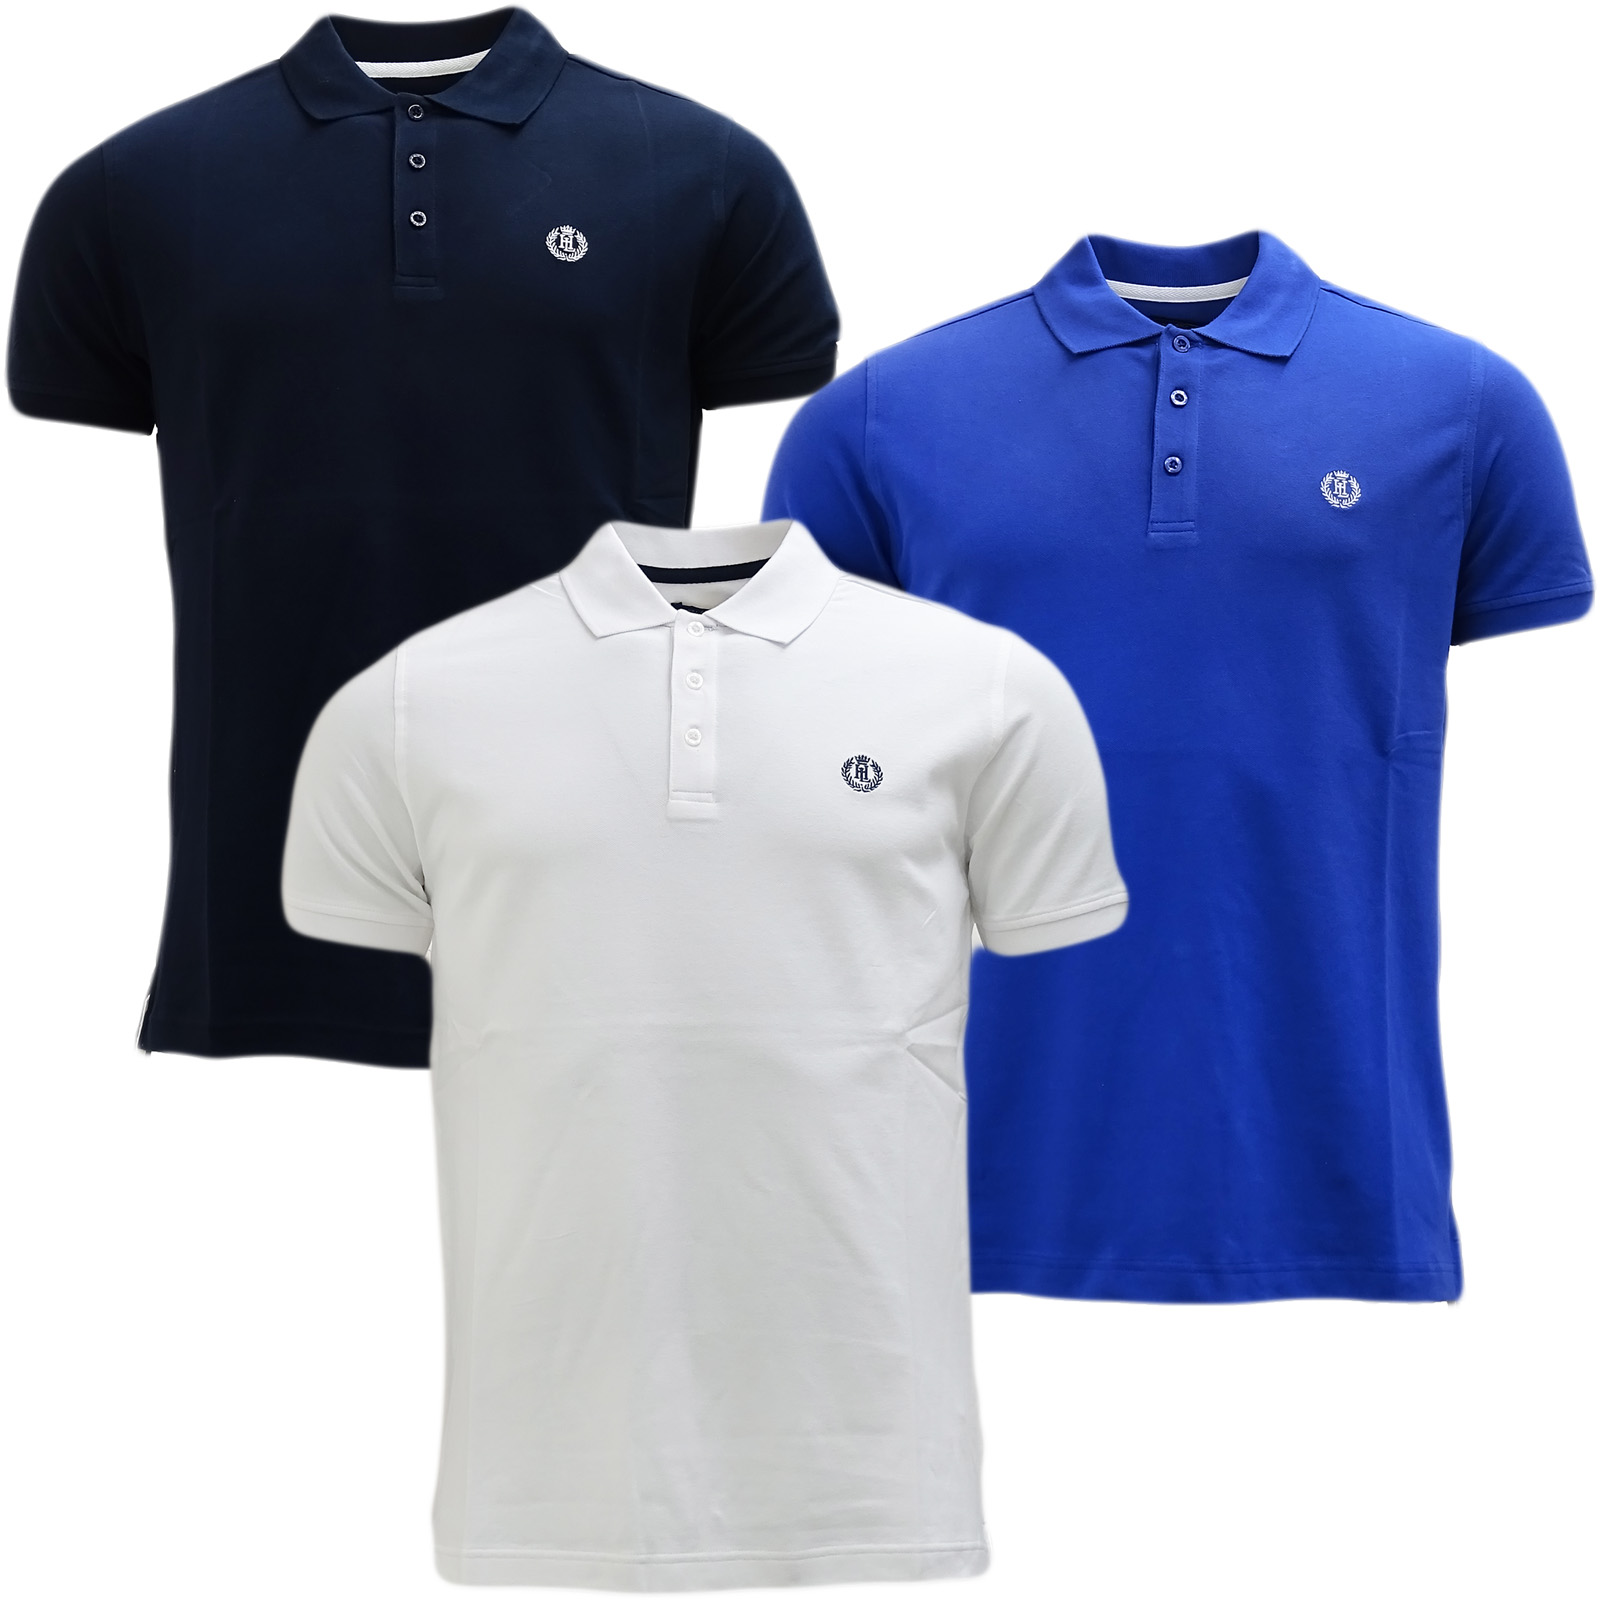 Henri Lloyd Plain Stretch Polo Shirt Cowes 18